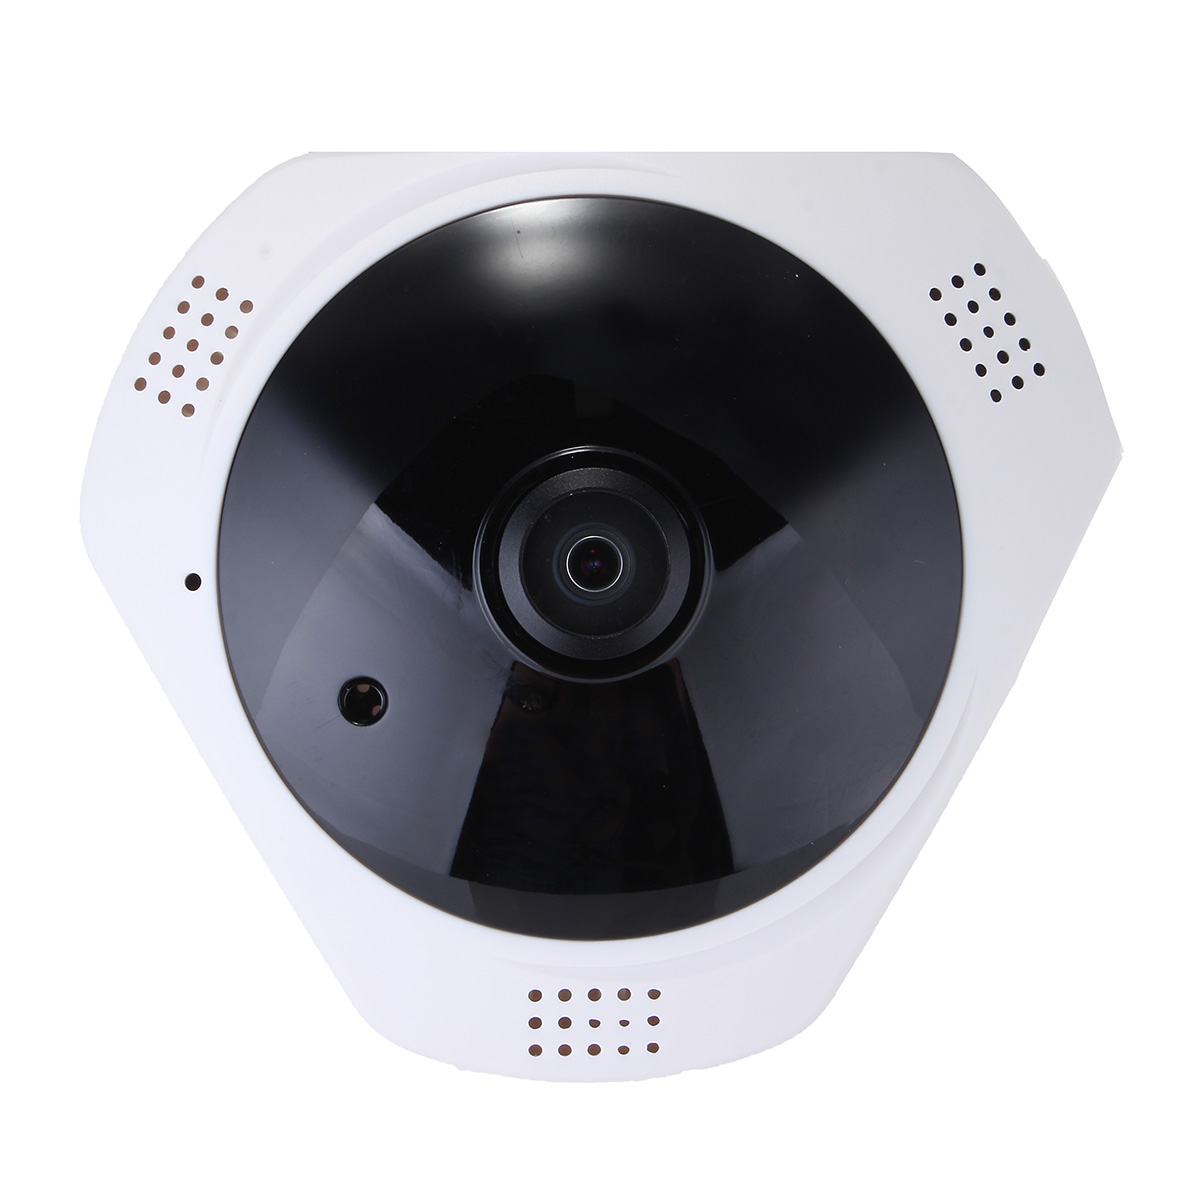 360 degree Panoramic Fisheye IP Camera Wifi Security Surveillance Camera VR 3D Cam CCTV Camera куртка bony kids цвет серый